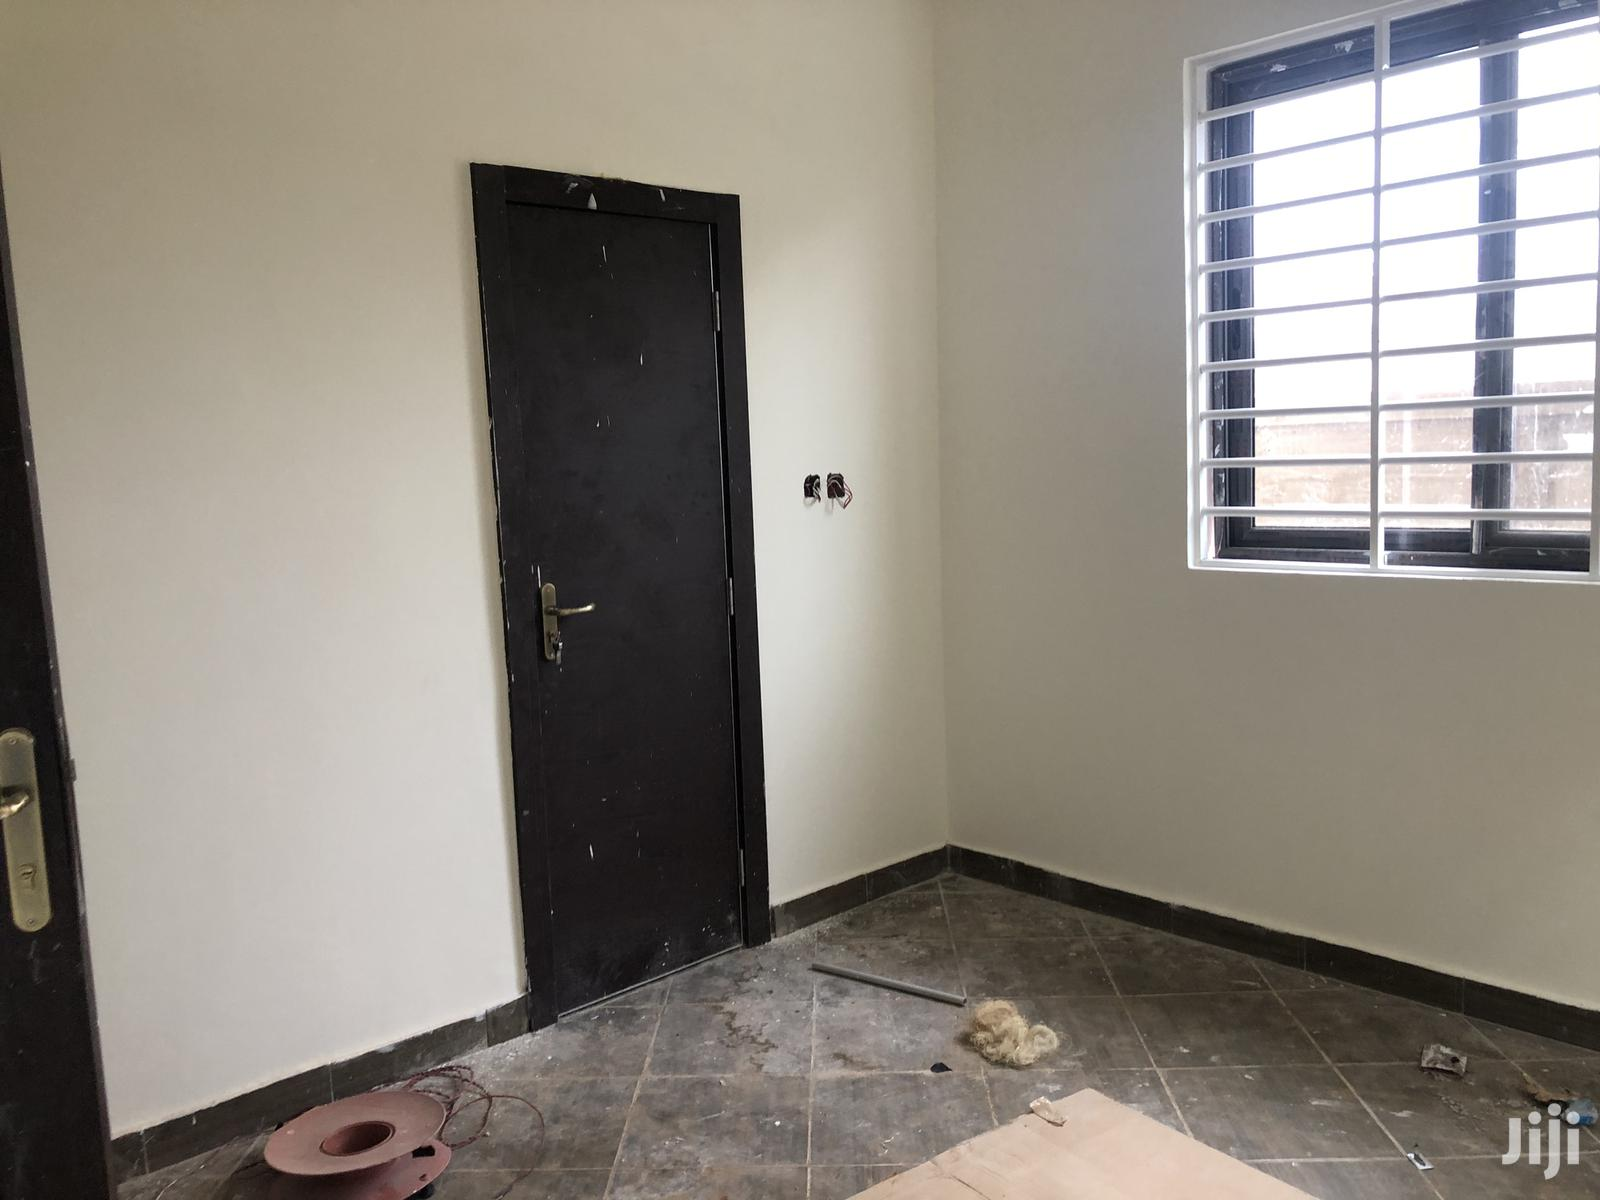 Three Bedroom House For Sale At Lakeside | Houses & Apartments For Sale for sale in East Legon, Greater Accra, Ghana